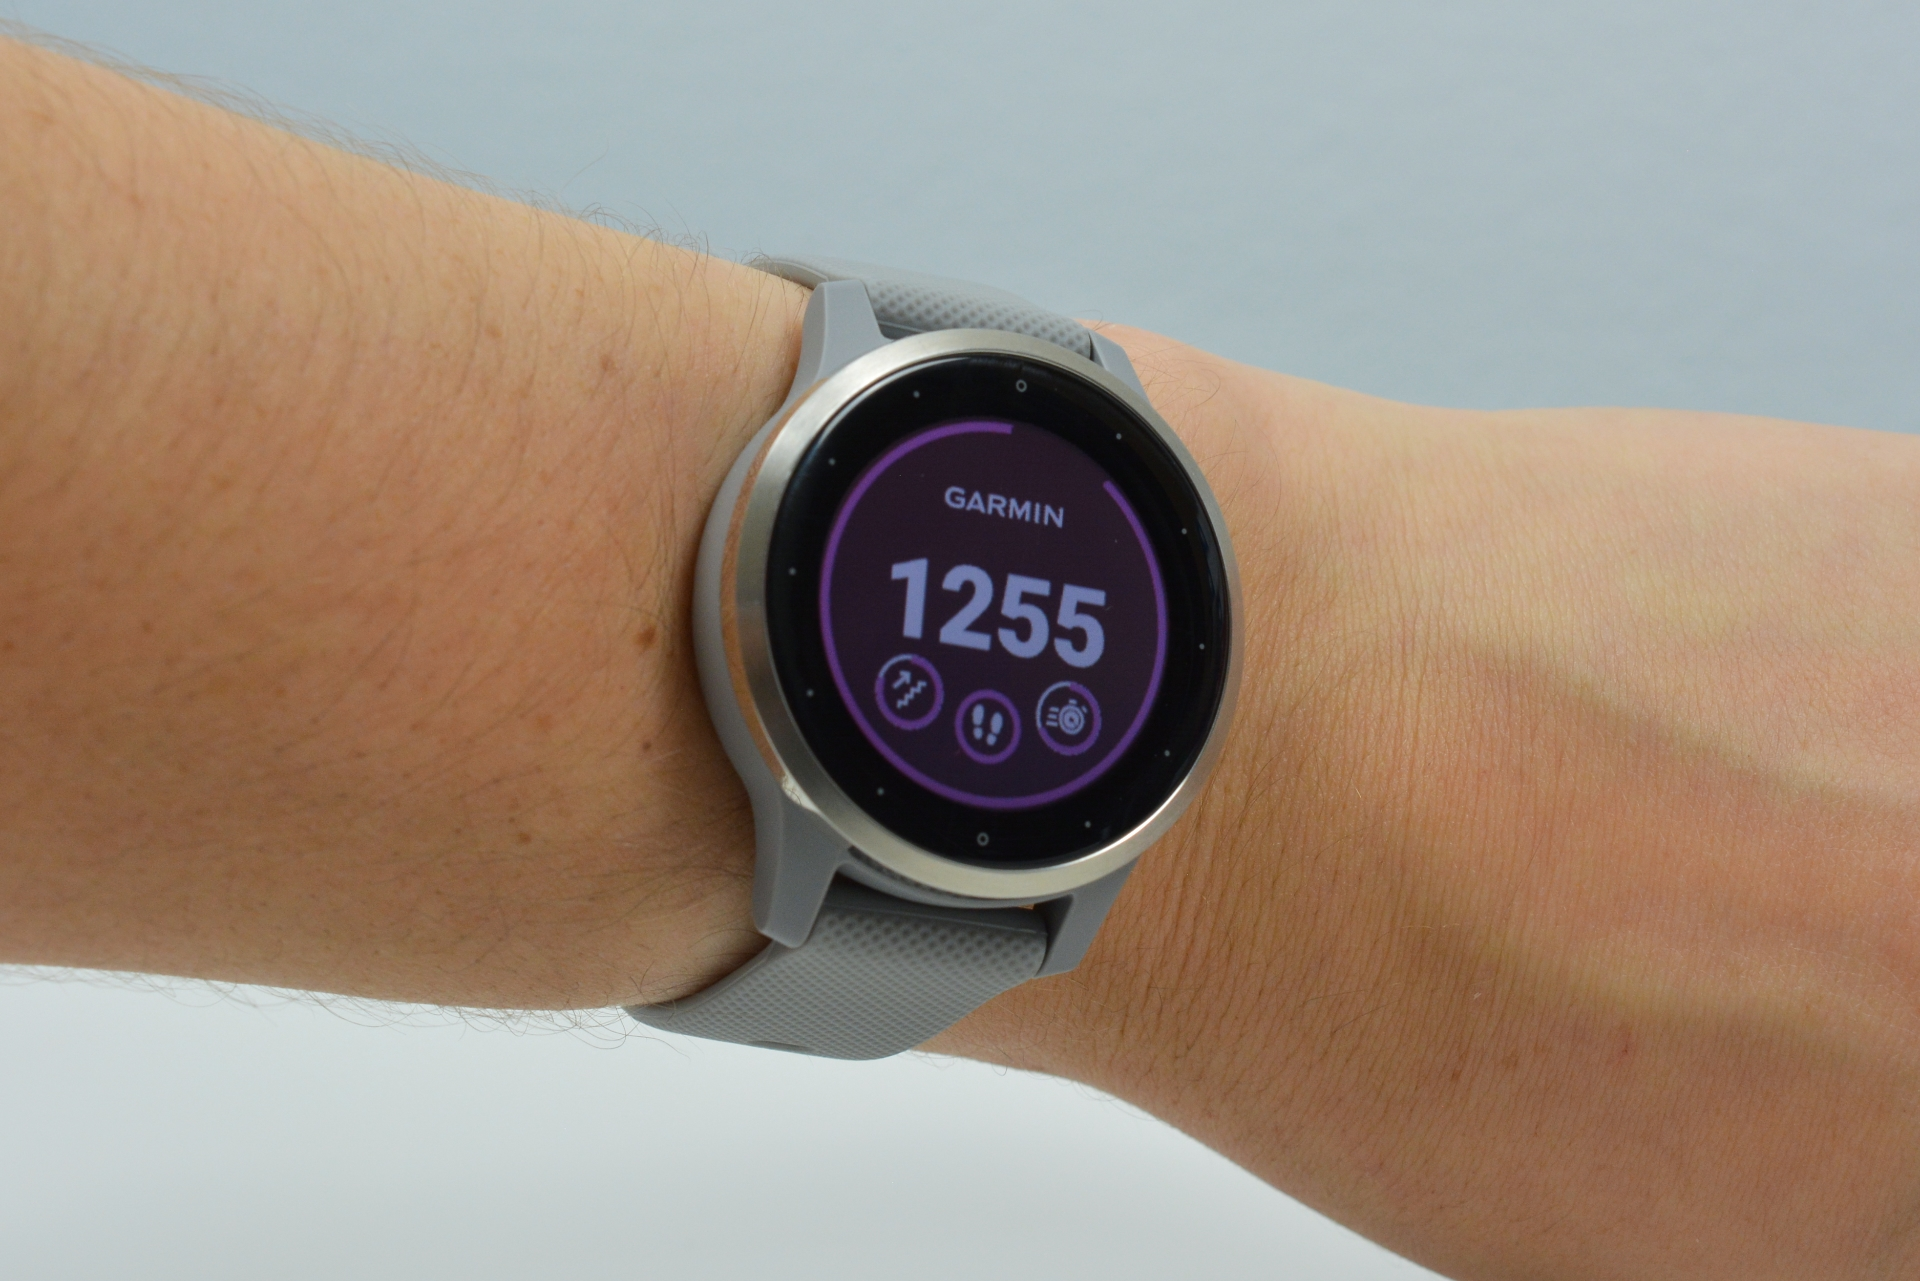 The Garmin Vivoactive 4s is a stylish and feature-packed smartwatch for fitness enthusiasts.